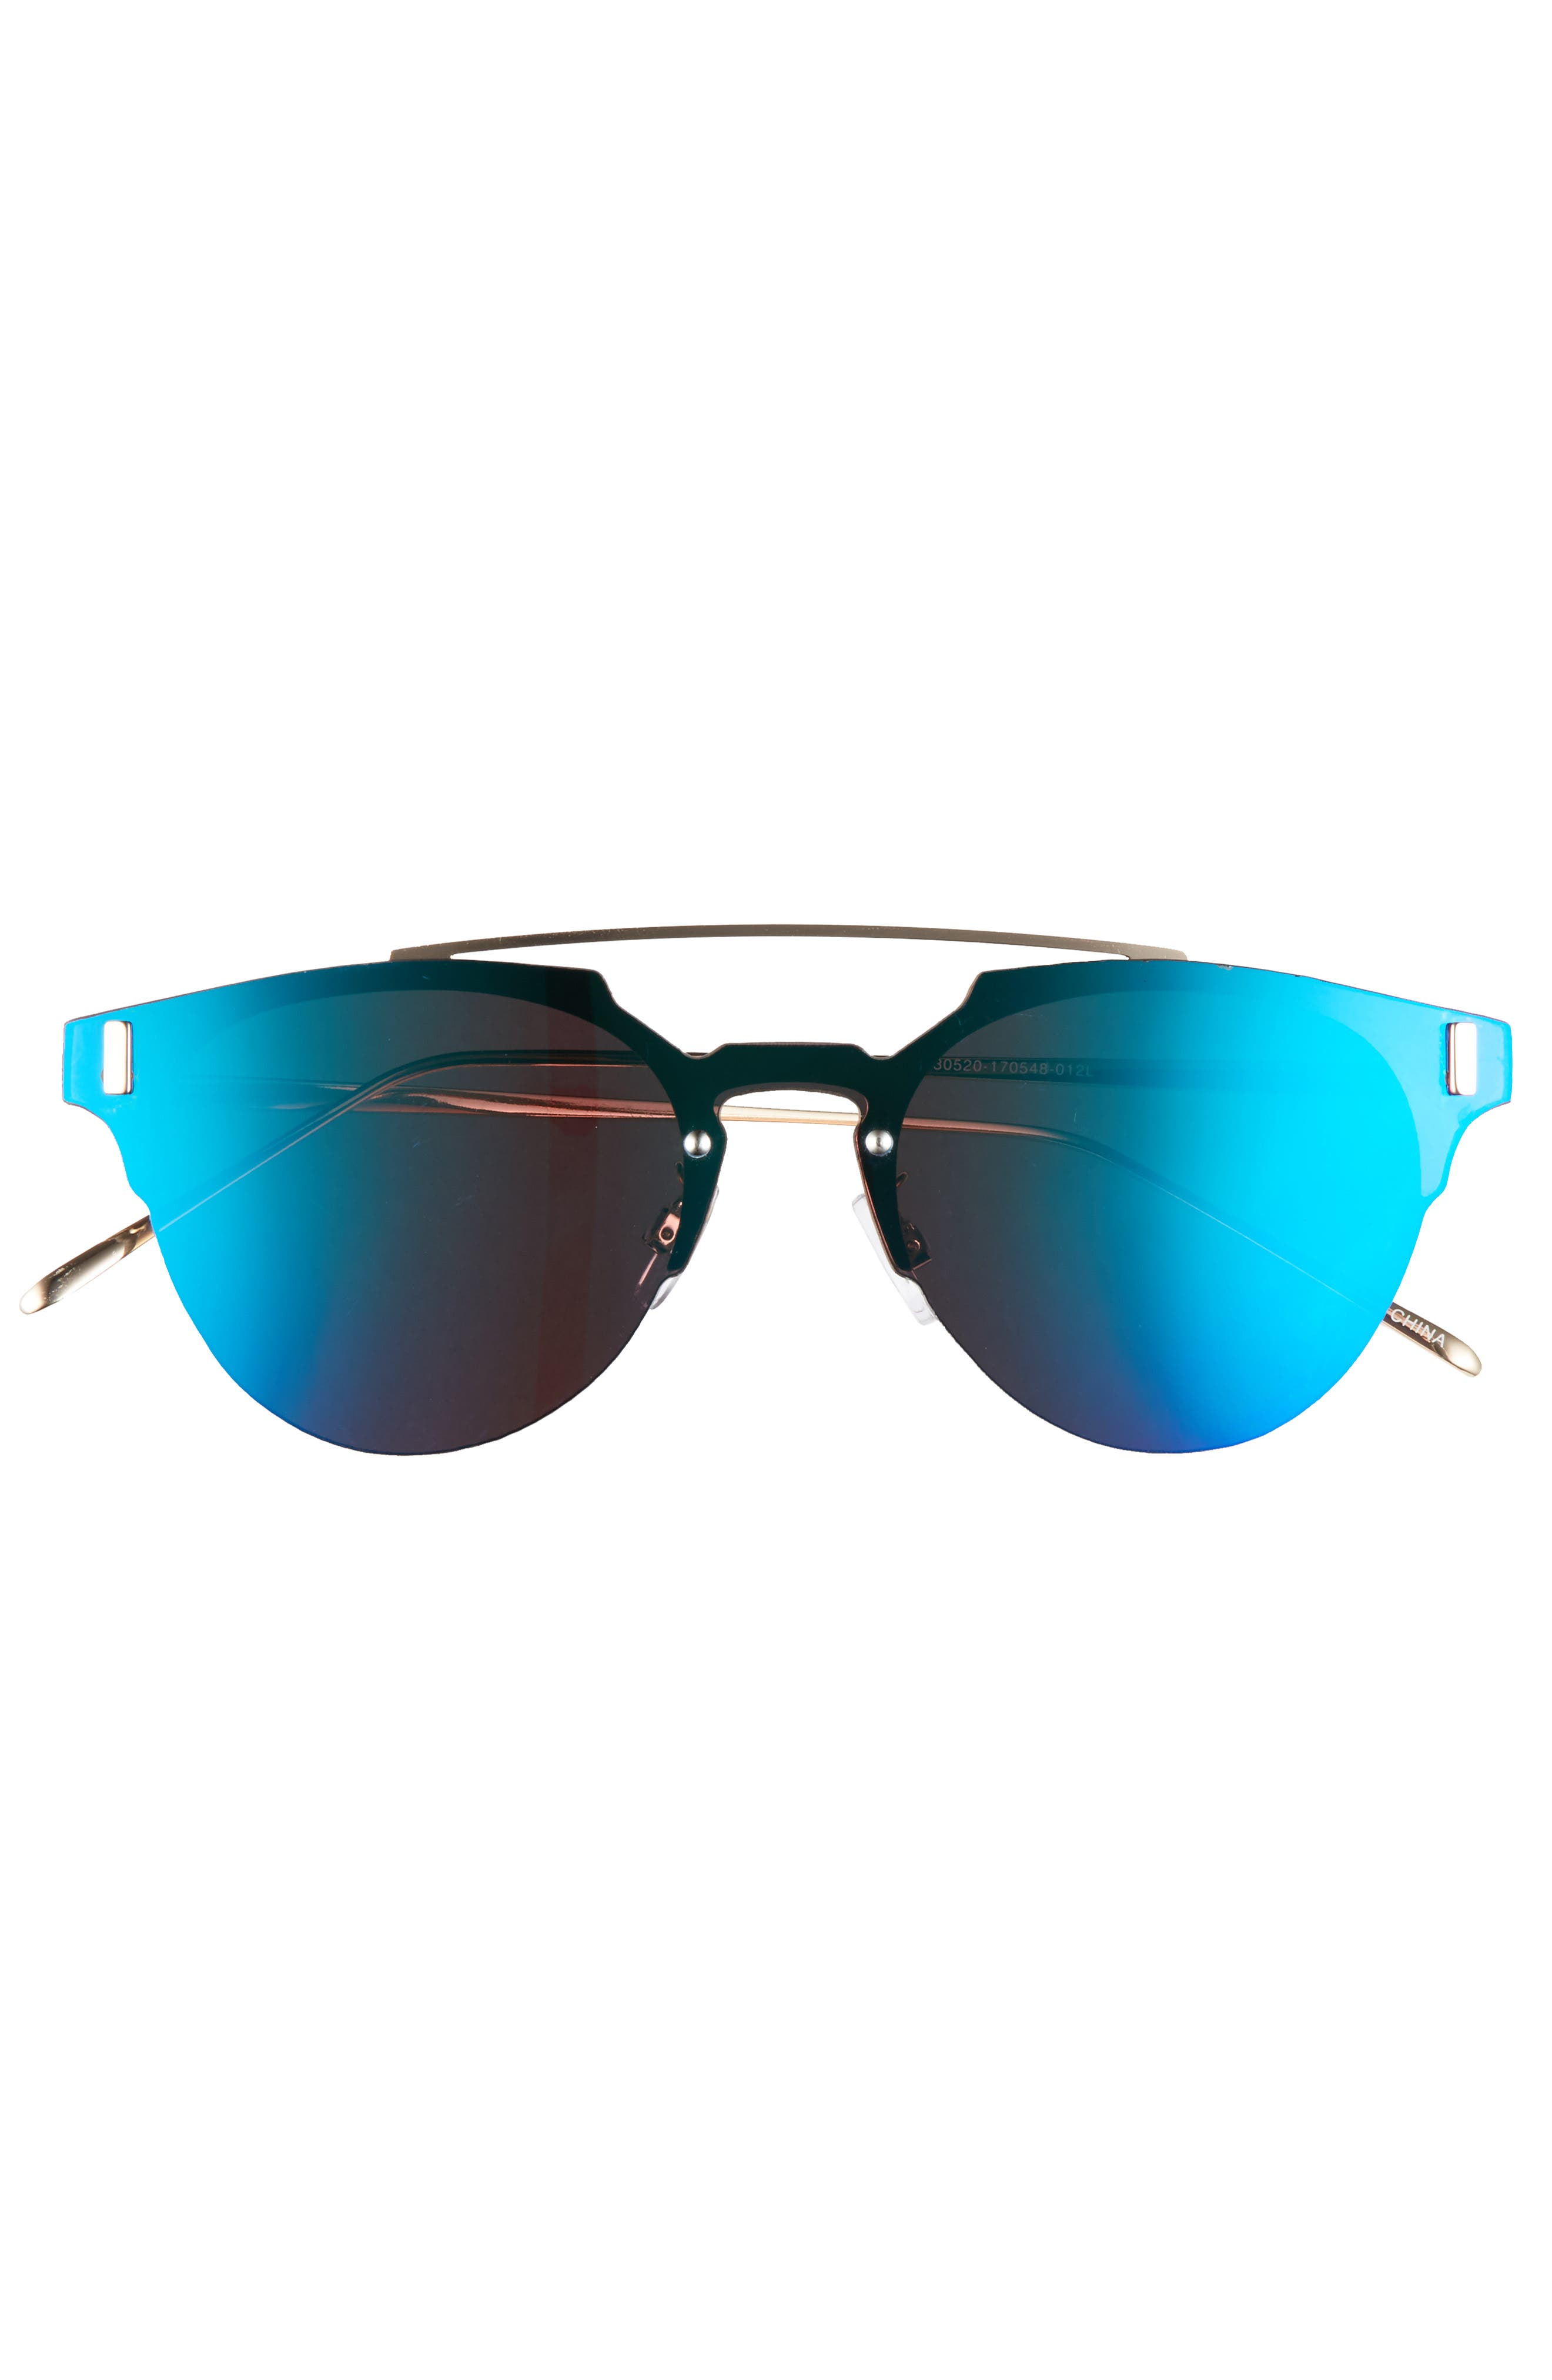 50mm Mirrored Round Sunglasses,                             Alternate thumbnail 3, color,                             400